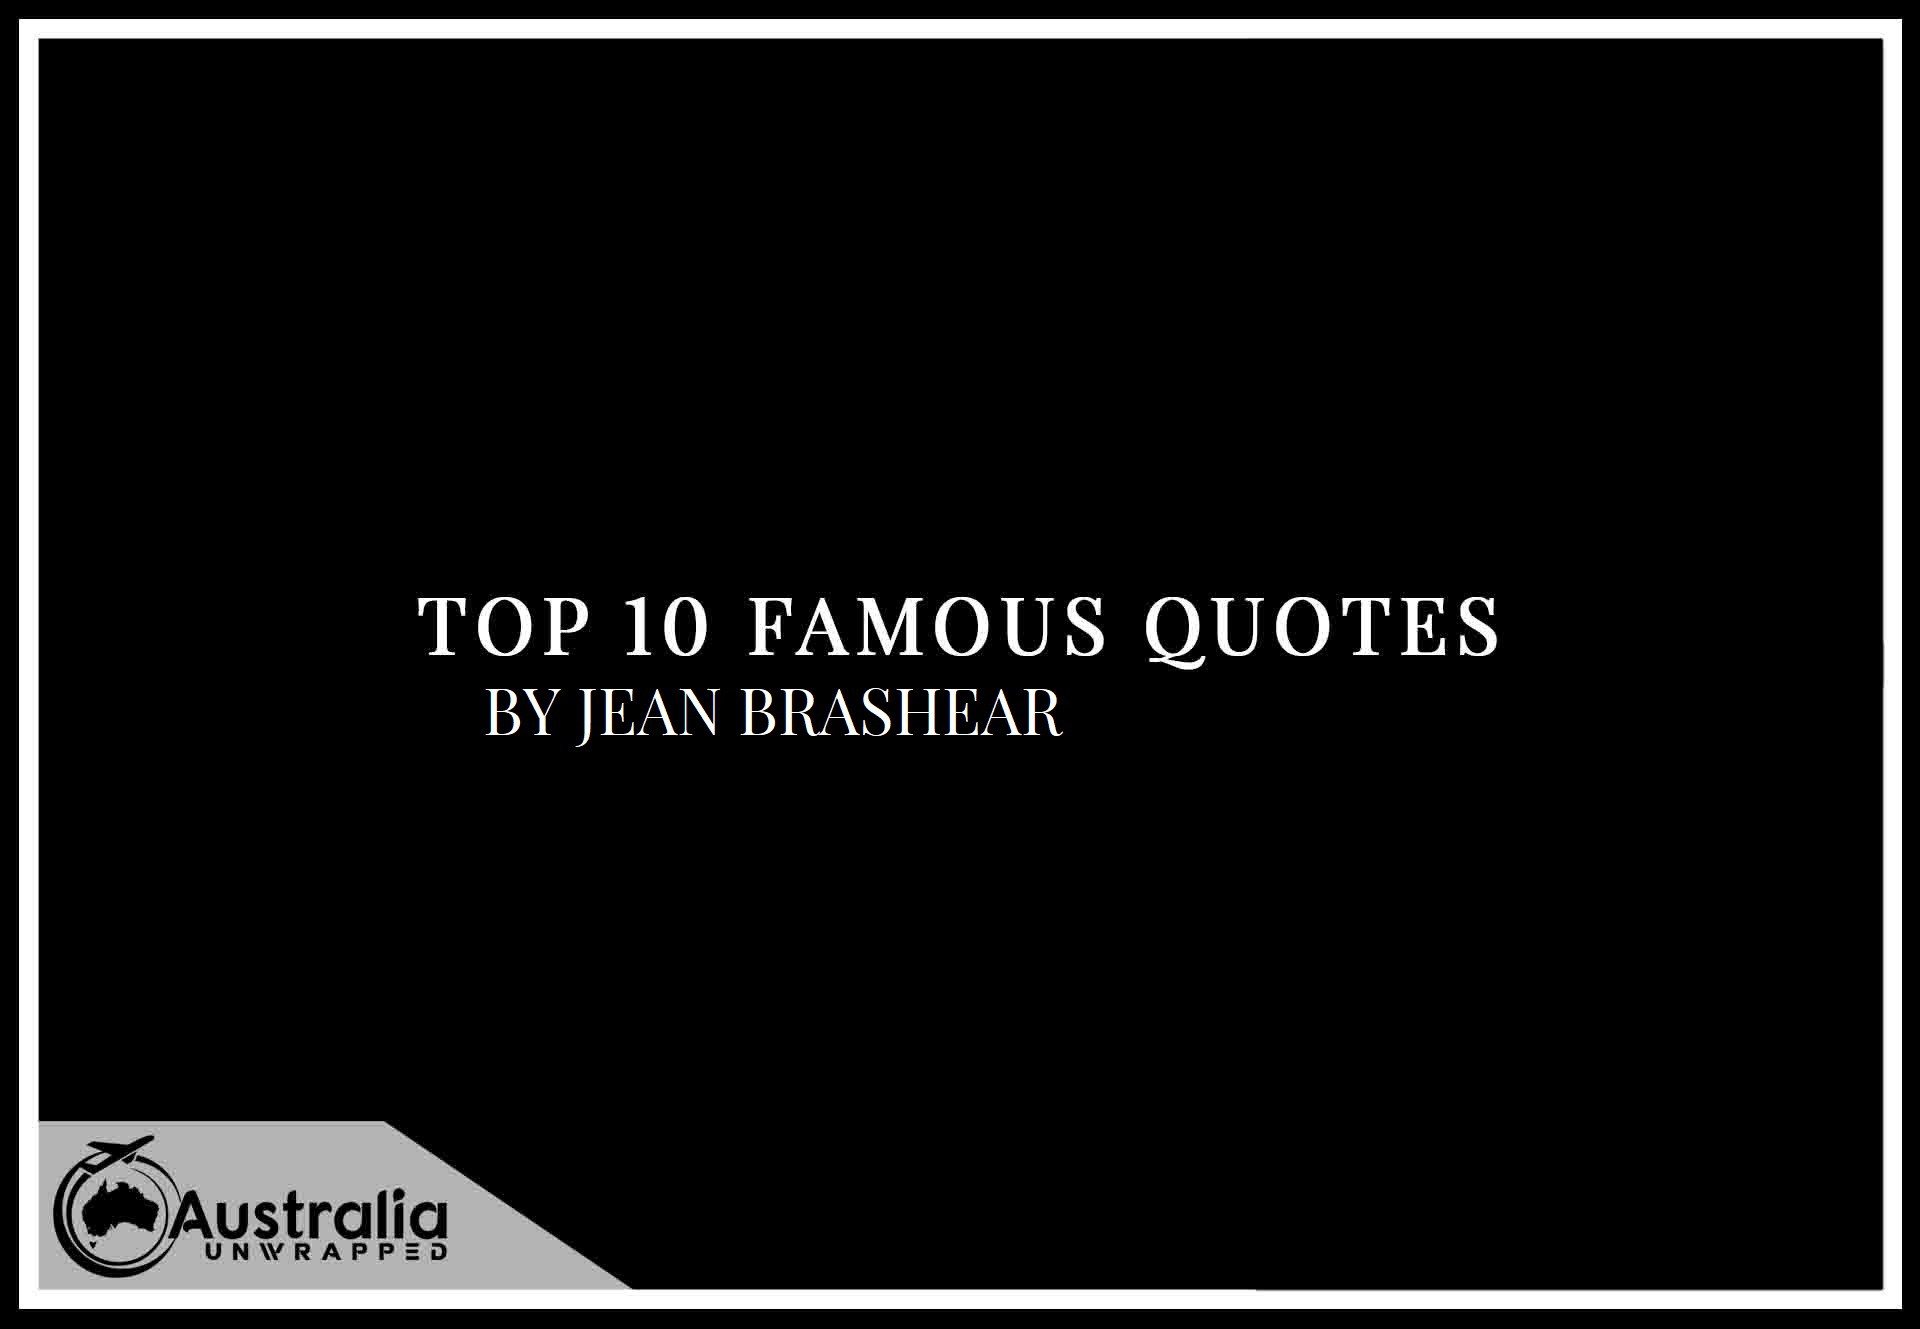 Top 10 Famous Quotes by Author Jean Brashear